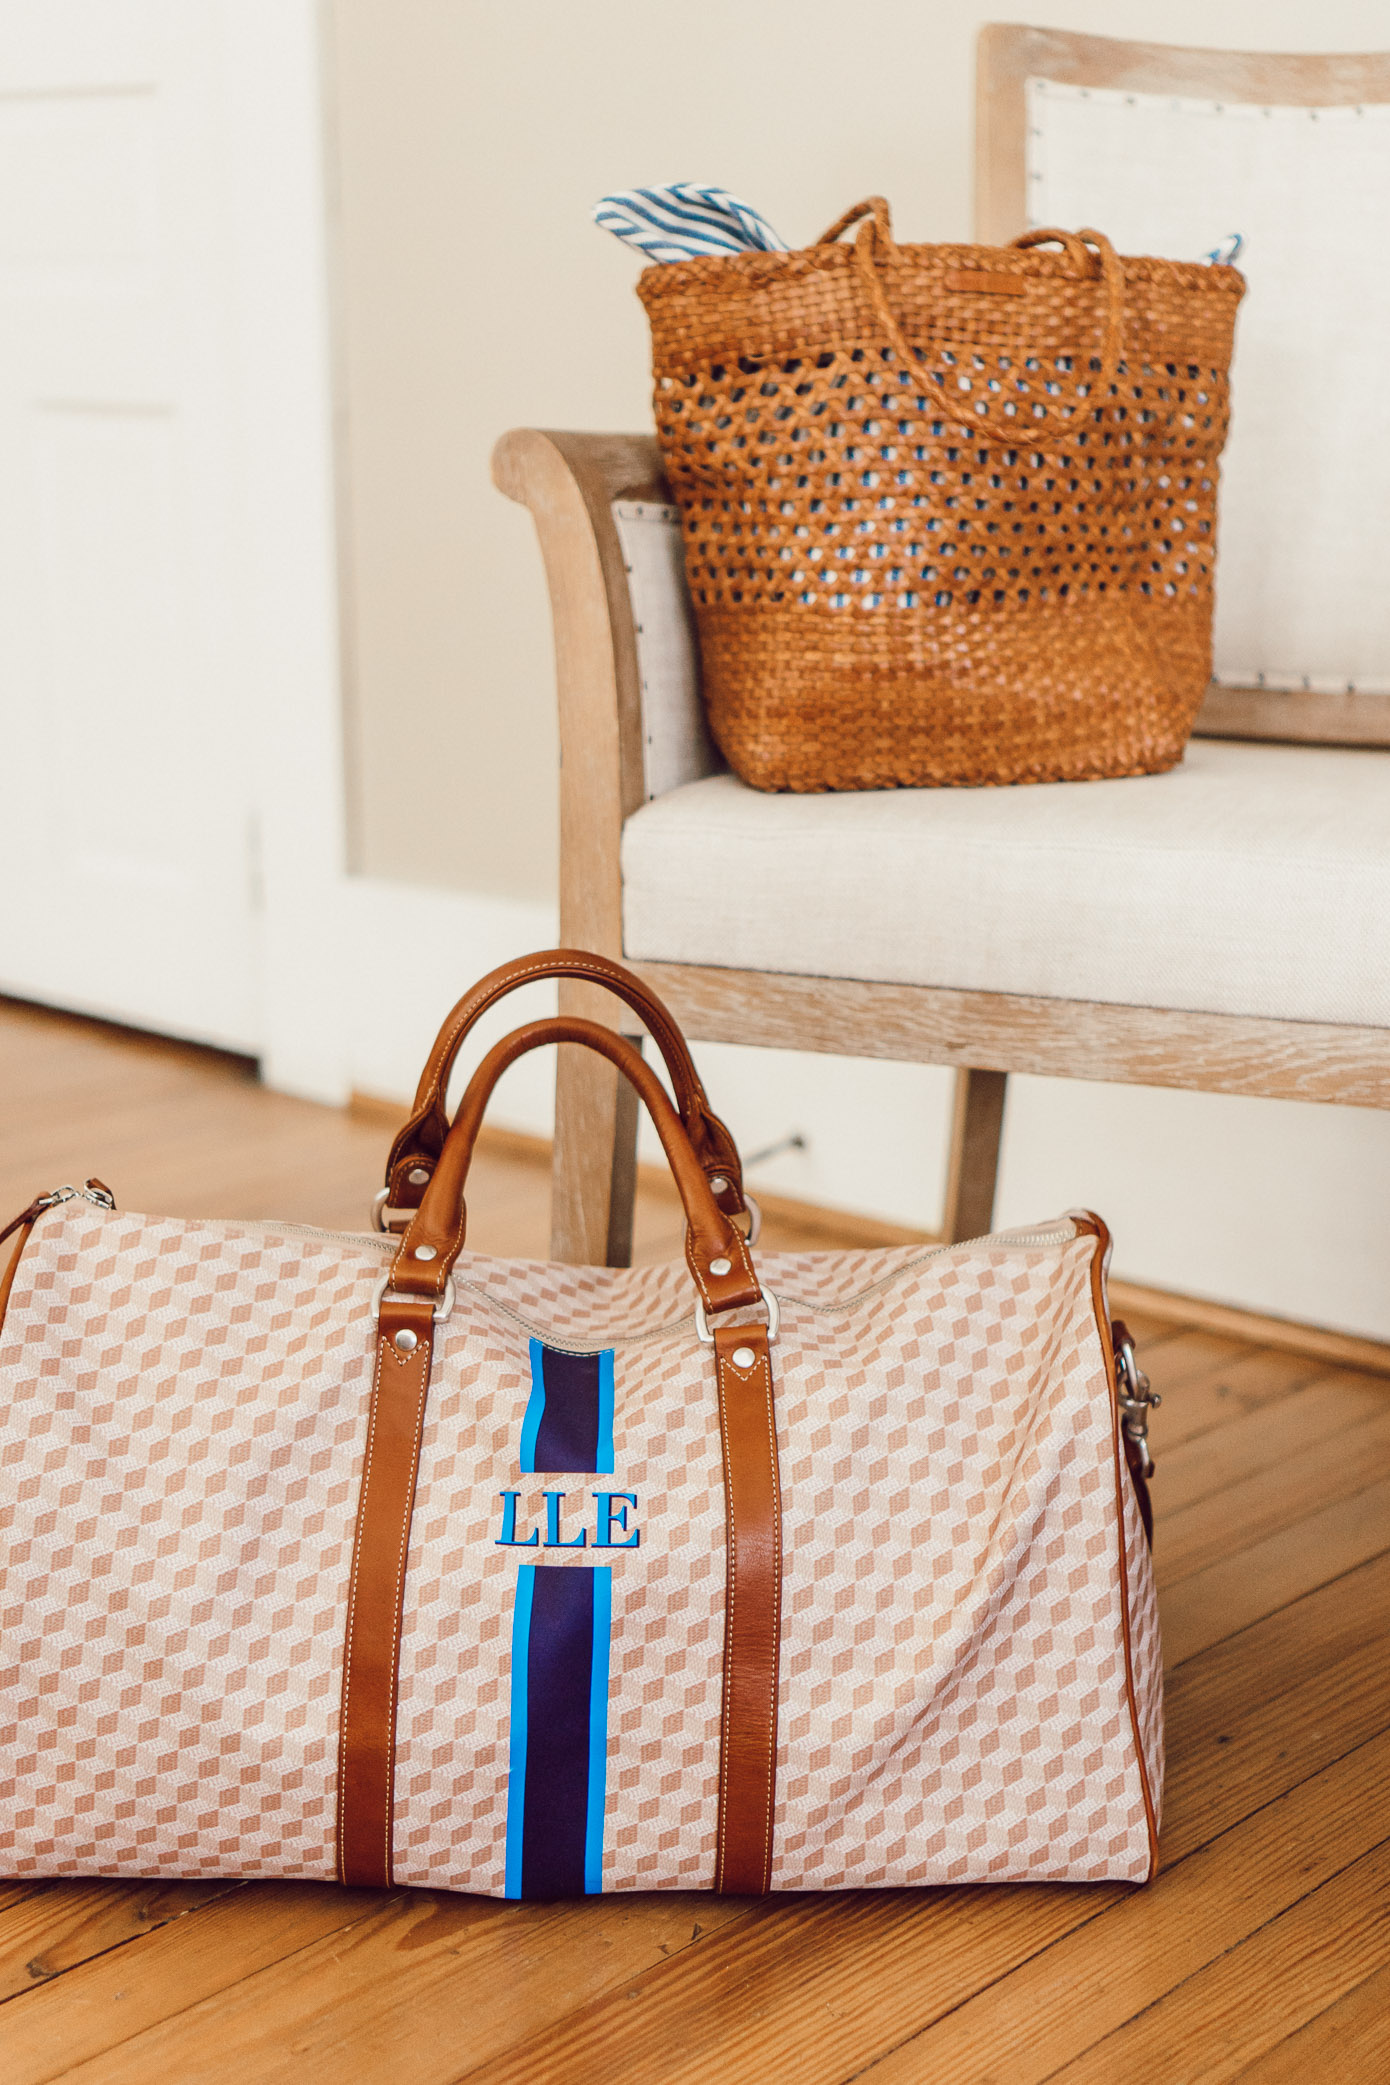 Loeffler Randall Maya Woven Leather Shopper Tote and Barrington The Belmont Cabin Bag | Where to Stay in Blowing Rock NC: The New Public House featured by popular North Carolina travel blogger Laura Leigh of Louella Reese